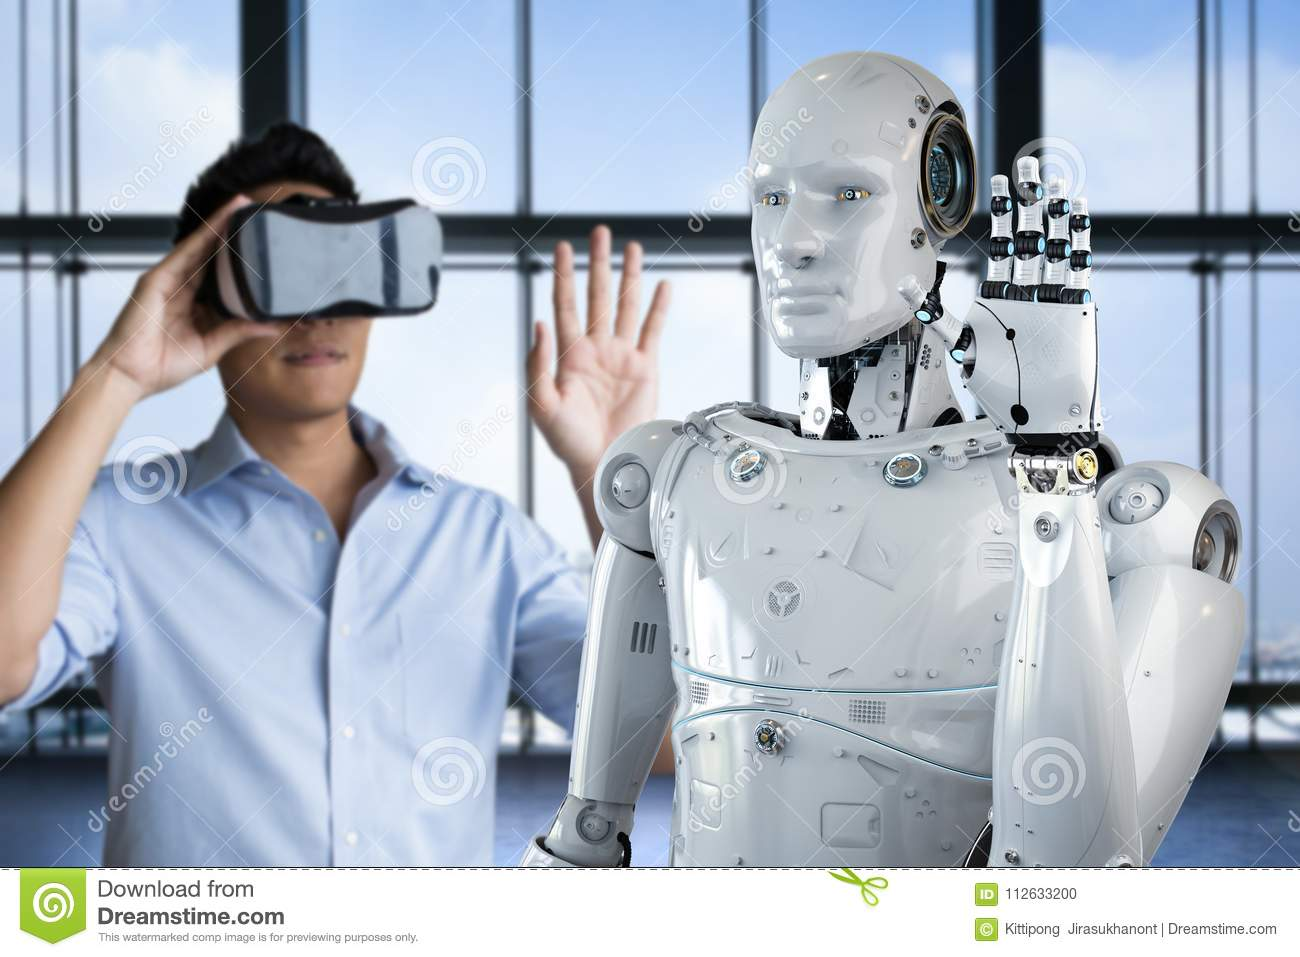 Man control robot stock photo  Image of human, headset - 112633200